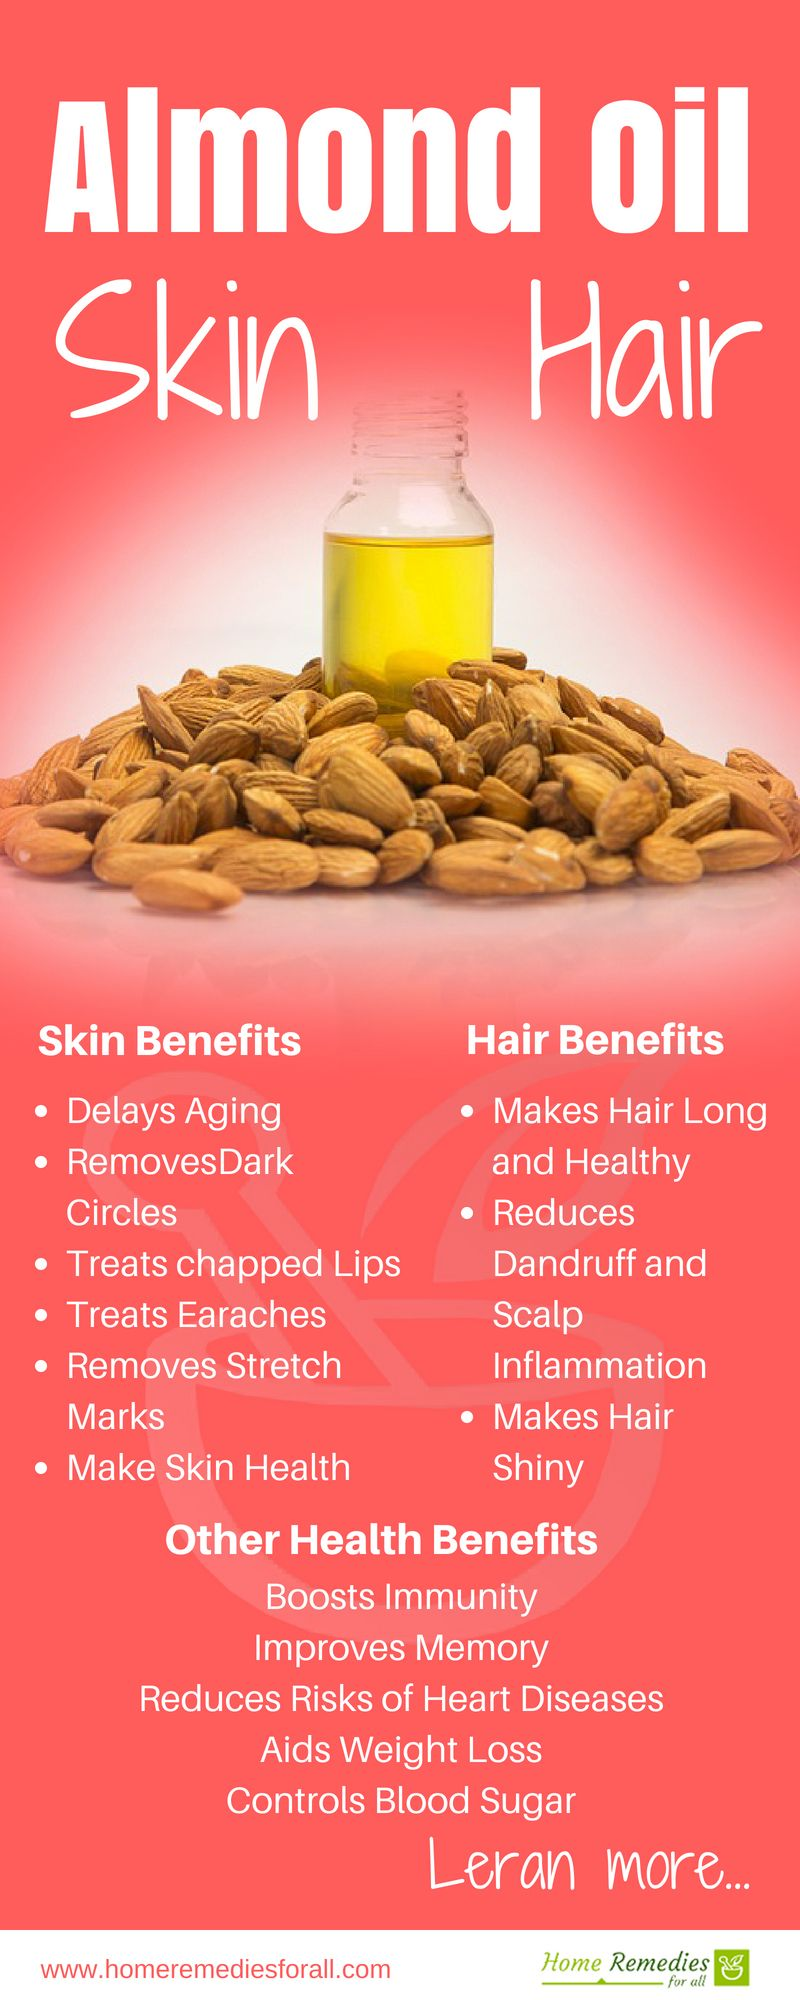 use almond oil for face, skin , scalp and hair. Almond oil offers